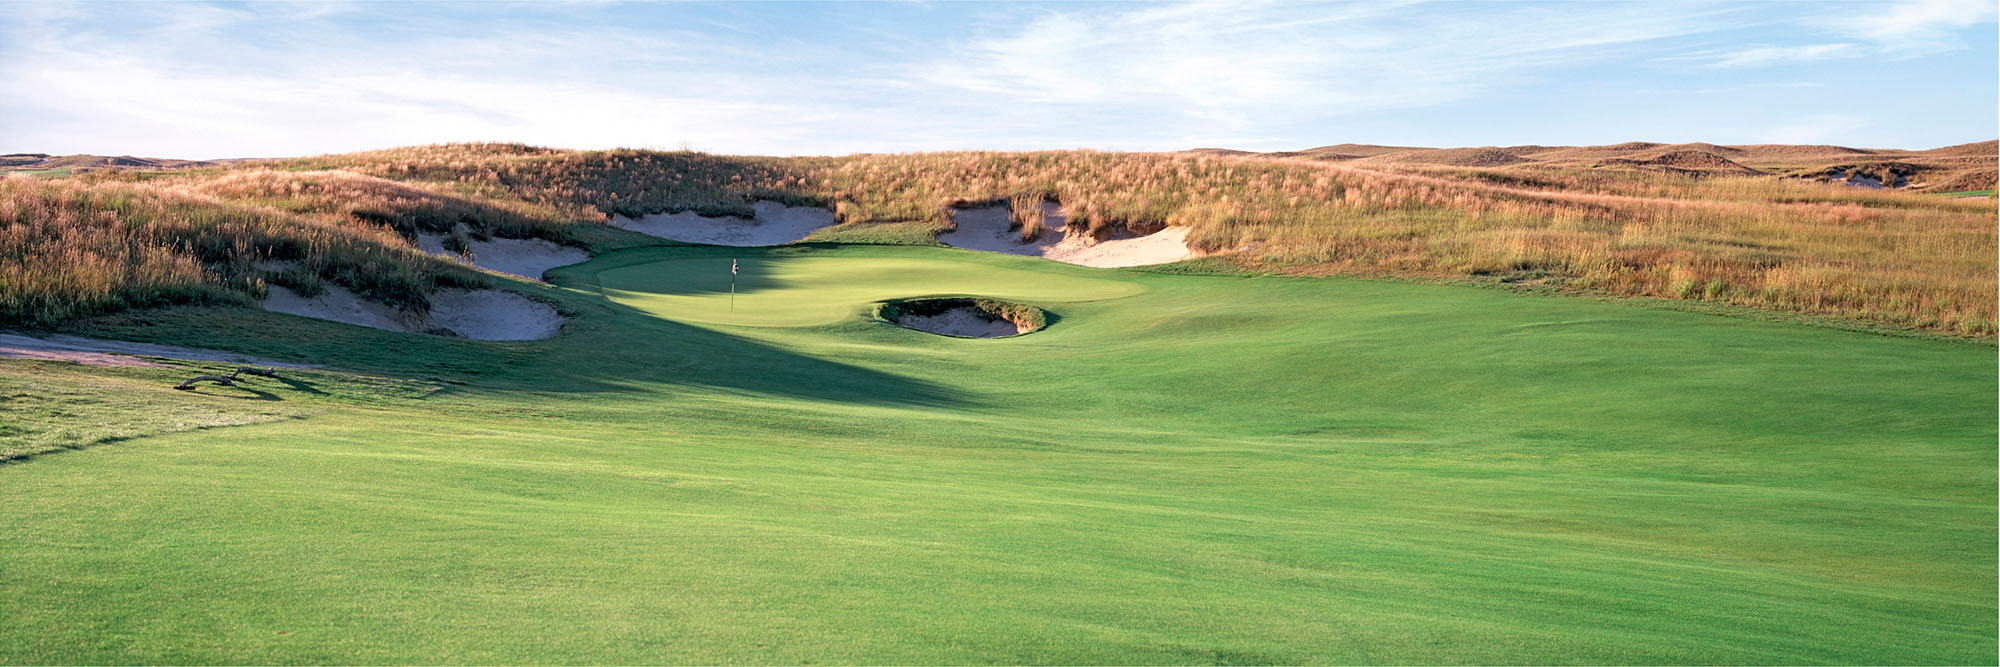 Golf Course Image - Sand Hills No. 8